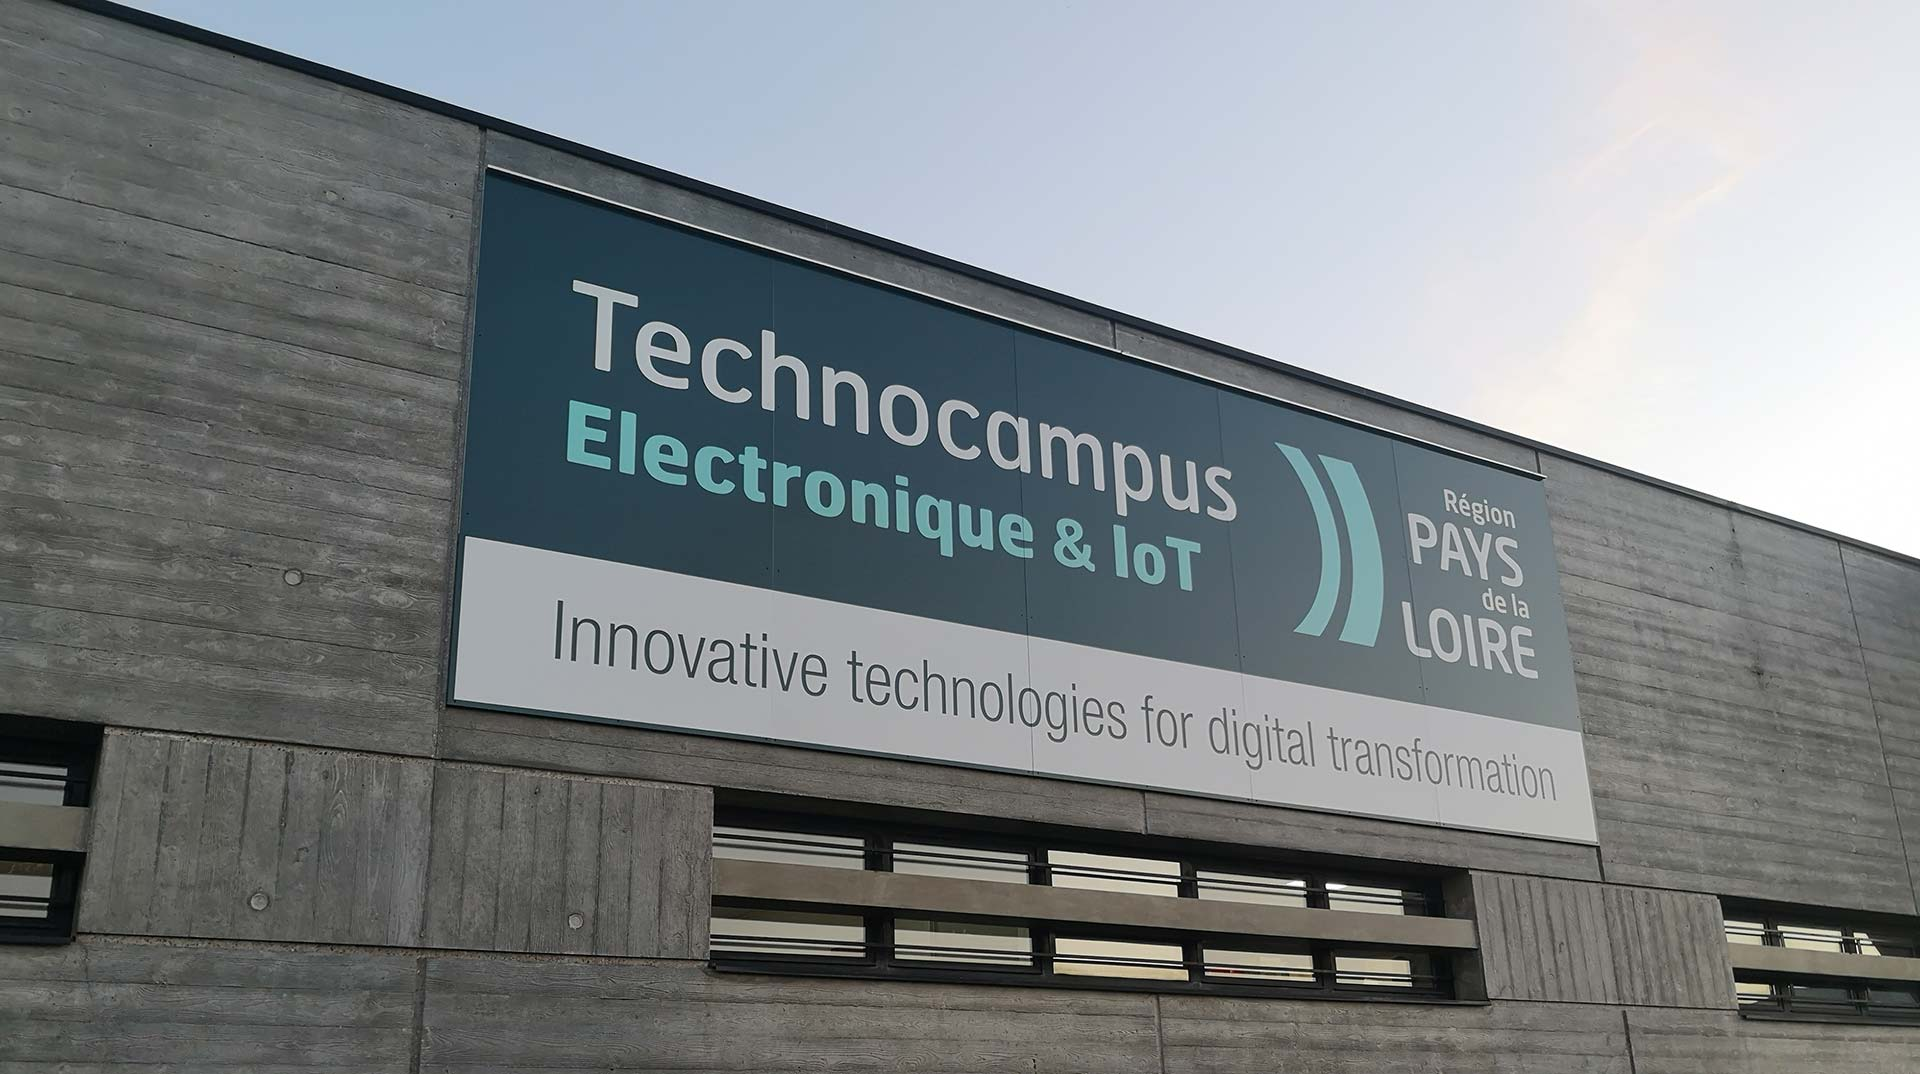 Revivez l'inauguration du Technocampus Electronique & IoT !